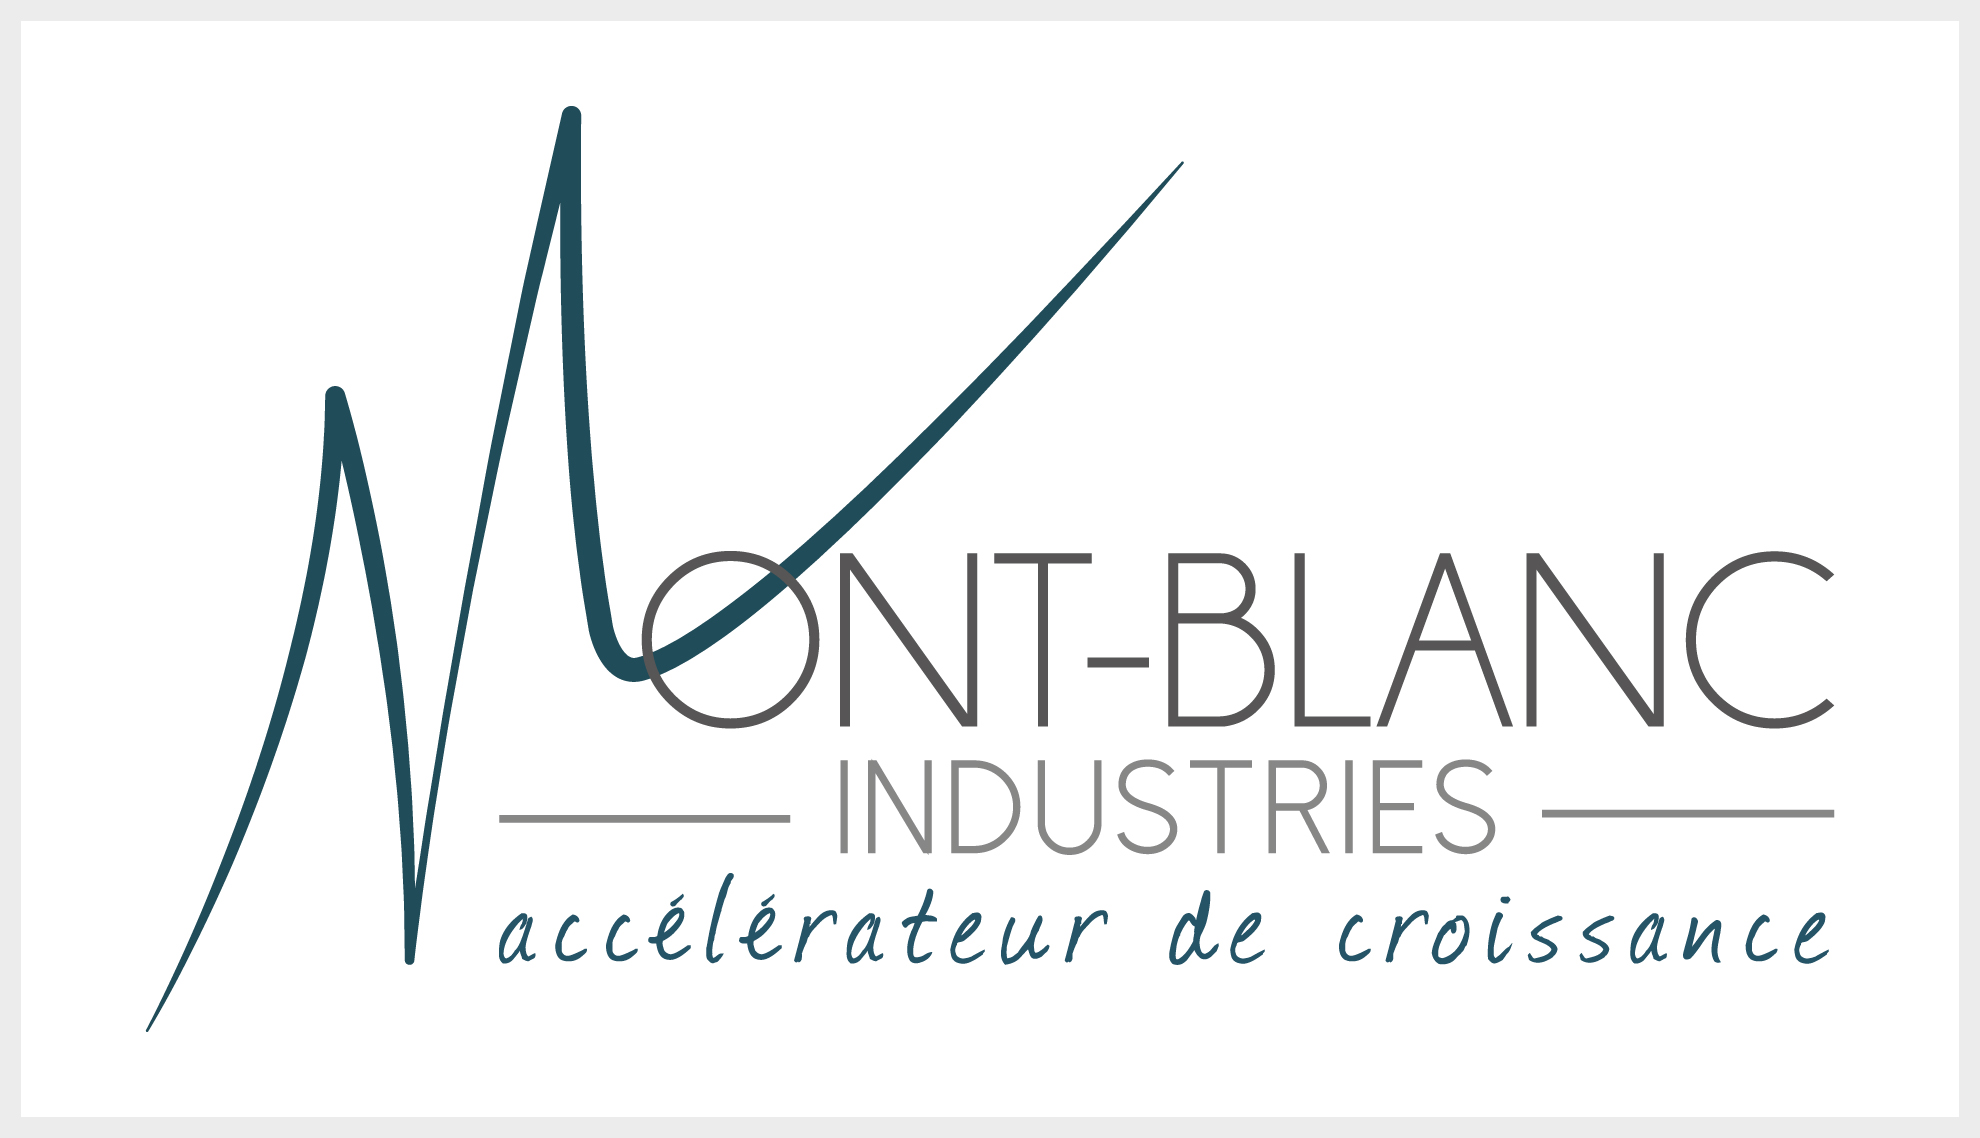 Mont-blanc industries cluster logo